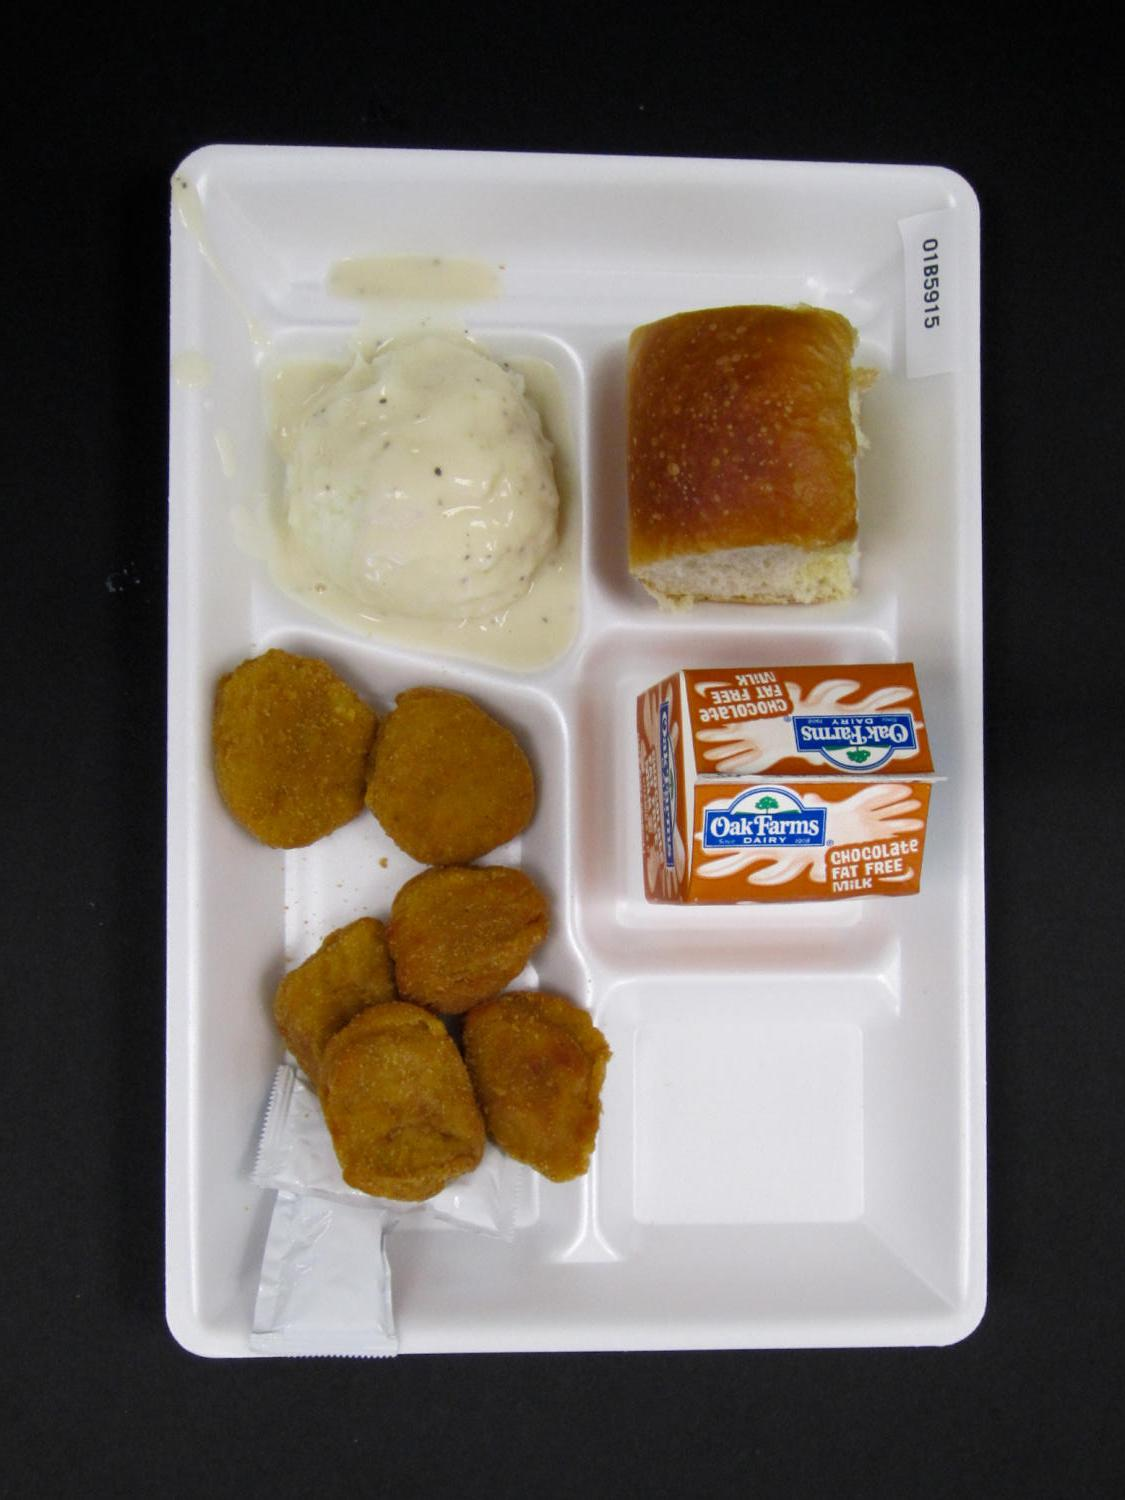 Student Lunch Tray: 01_20110330_01B5915                                                                                                      [Sequence #]: 1 of 2